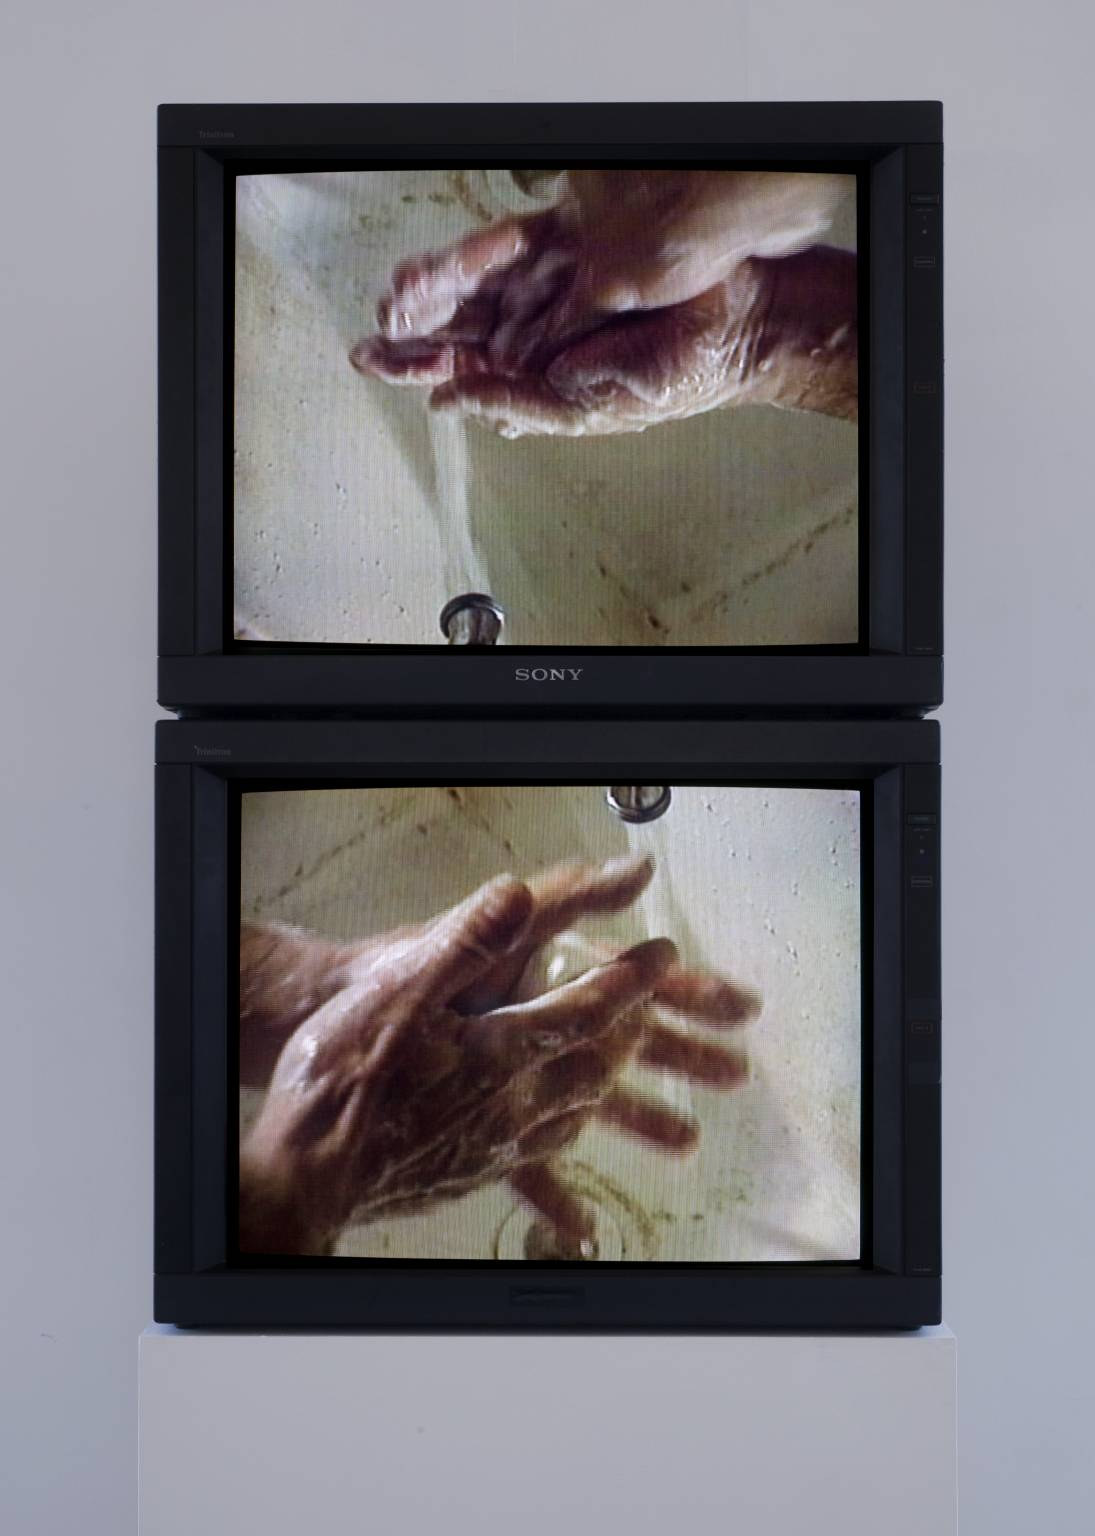 Raw Material Washing Hands, Normal (A of A/B) Raw Material Washing Hands, Normal (B of A/B) (1996)  Bruce Nauman